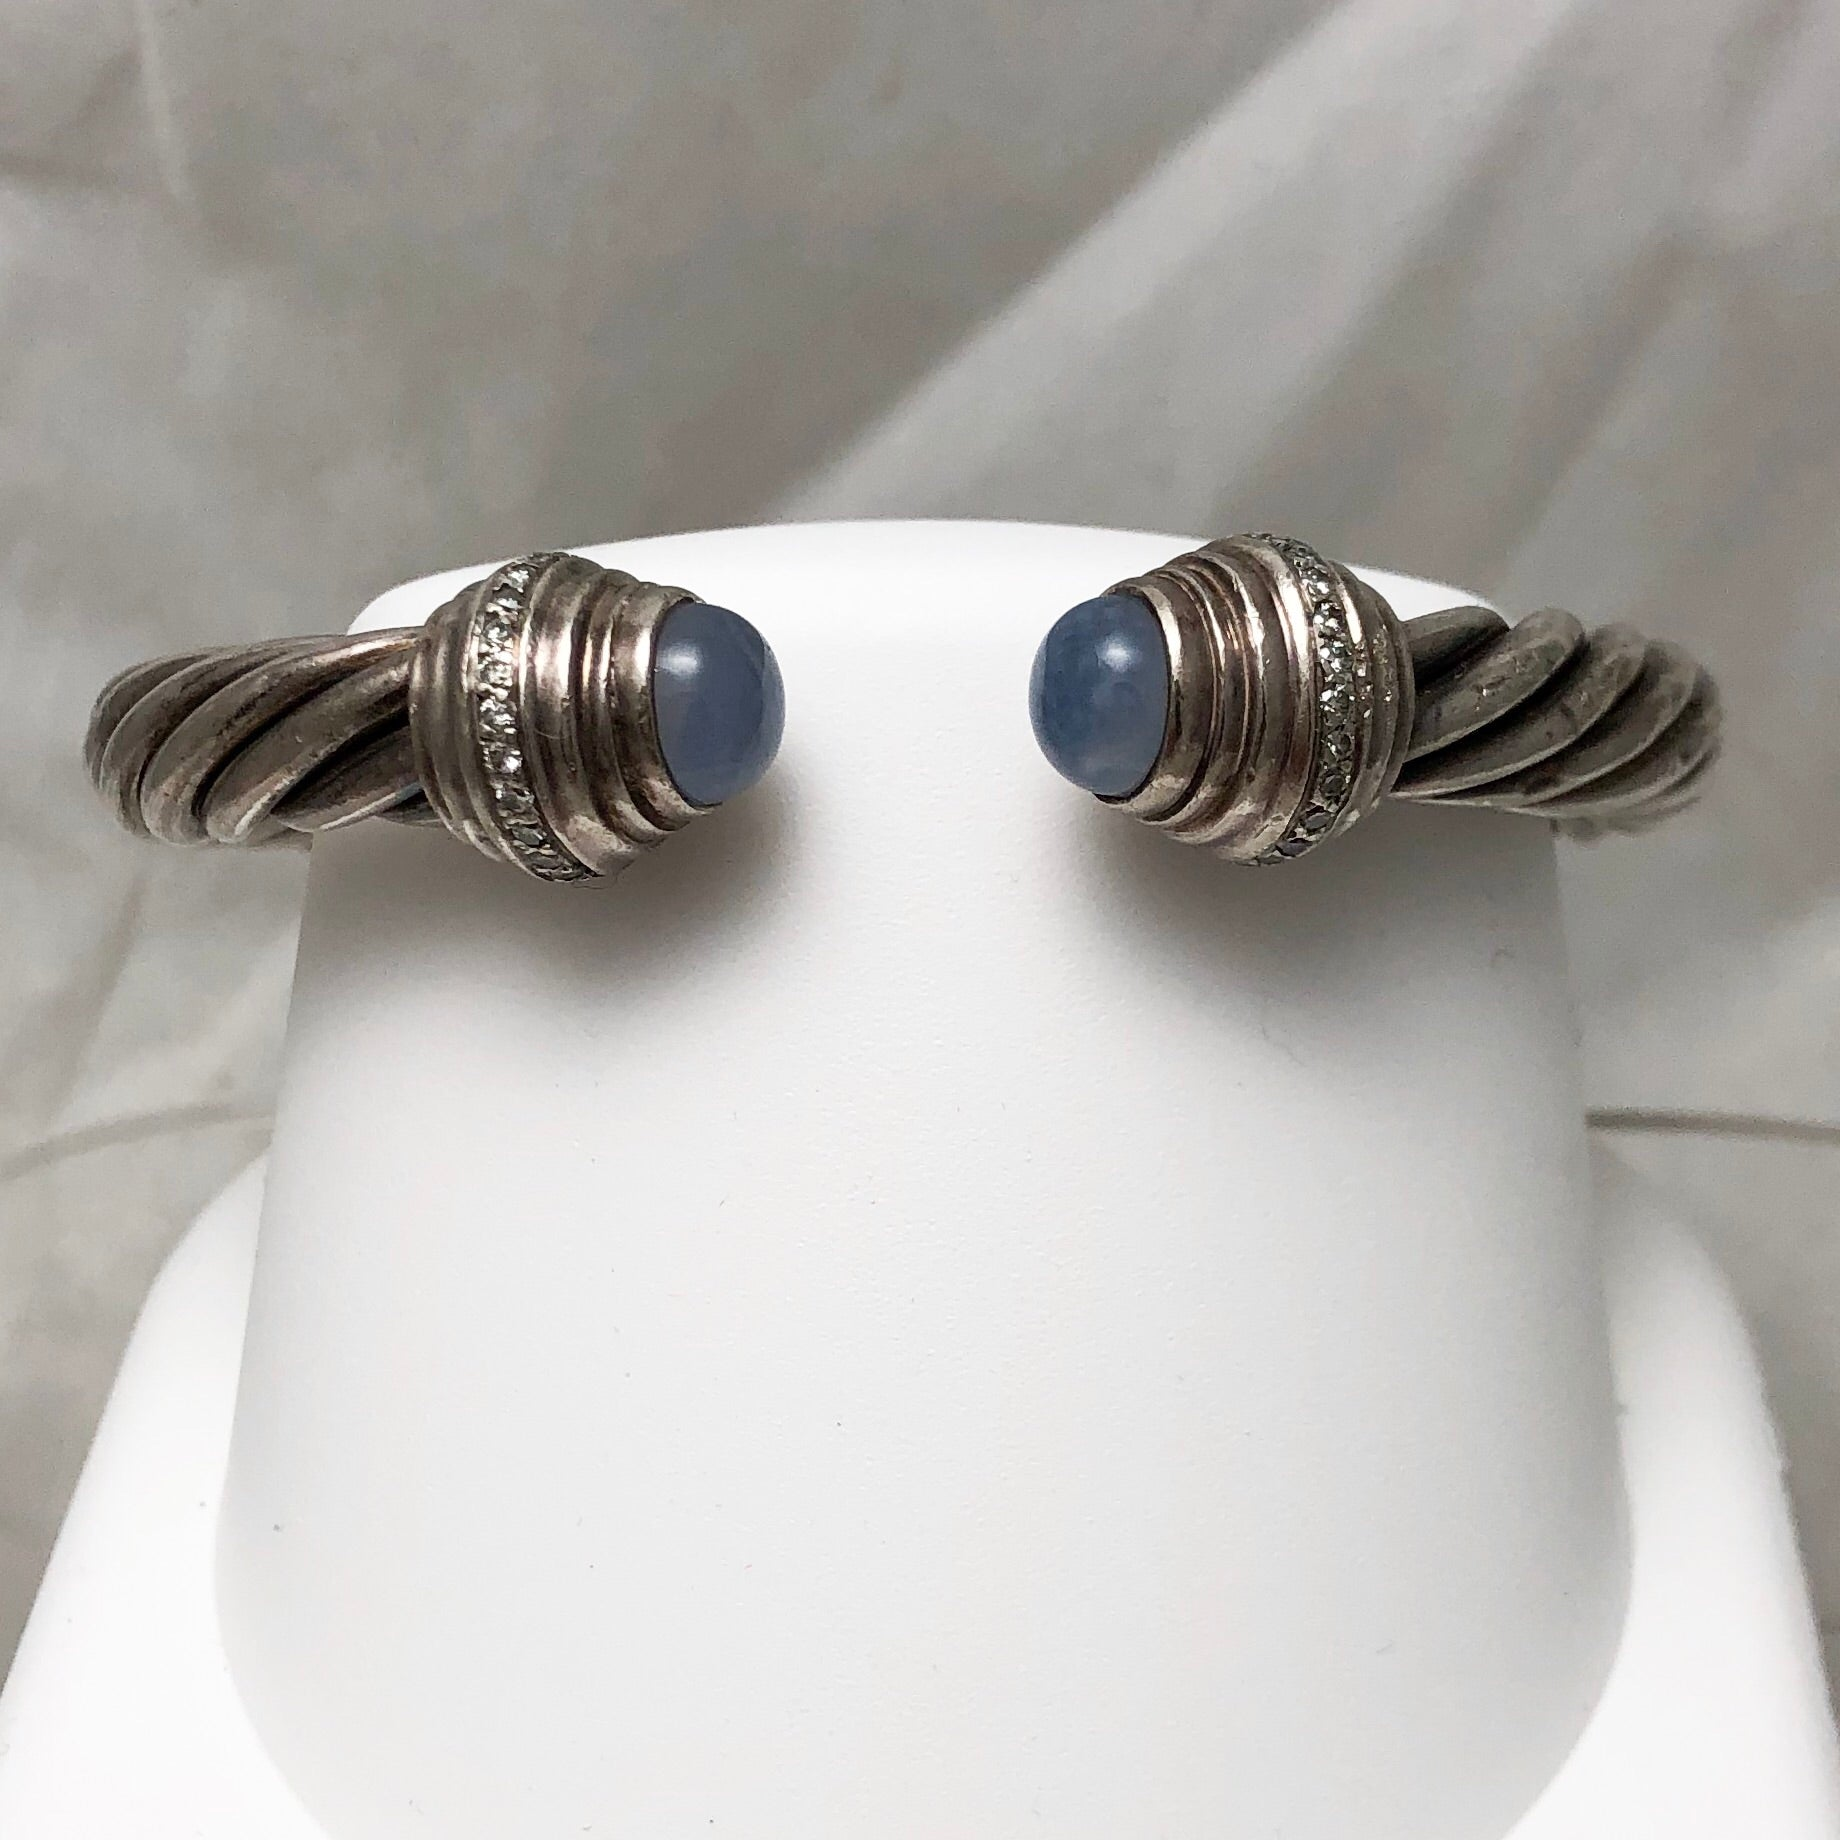 Sterling Silver Yurman-like Twisted Thick Cable with Stones on End   CB0093